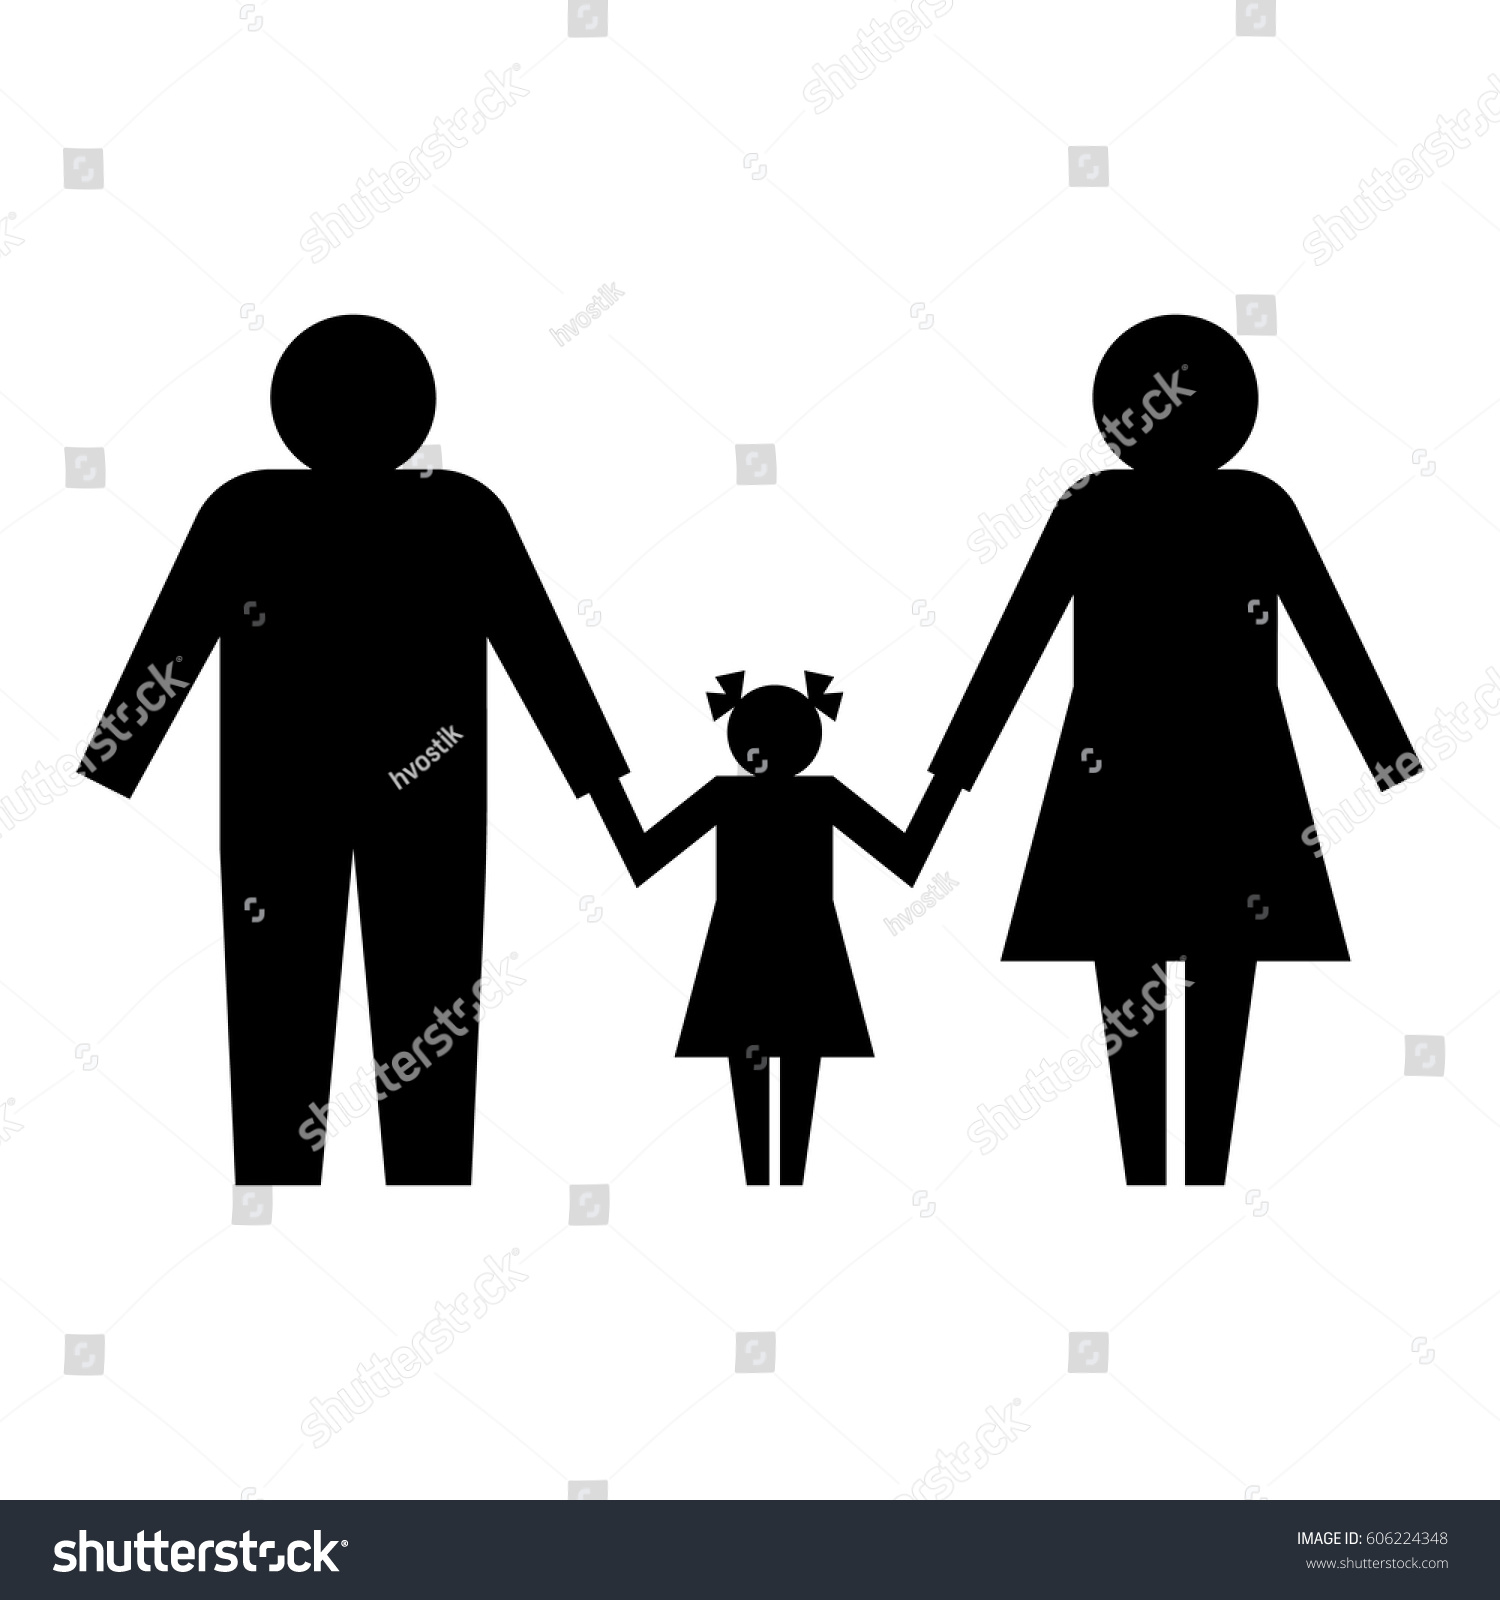 Family icon black silhouette isolated on stock vector 606224348 family icon black silhouette isolated on white background parents with a child symbol buycottarizona